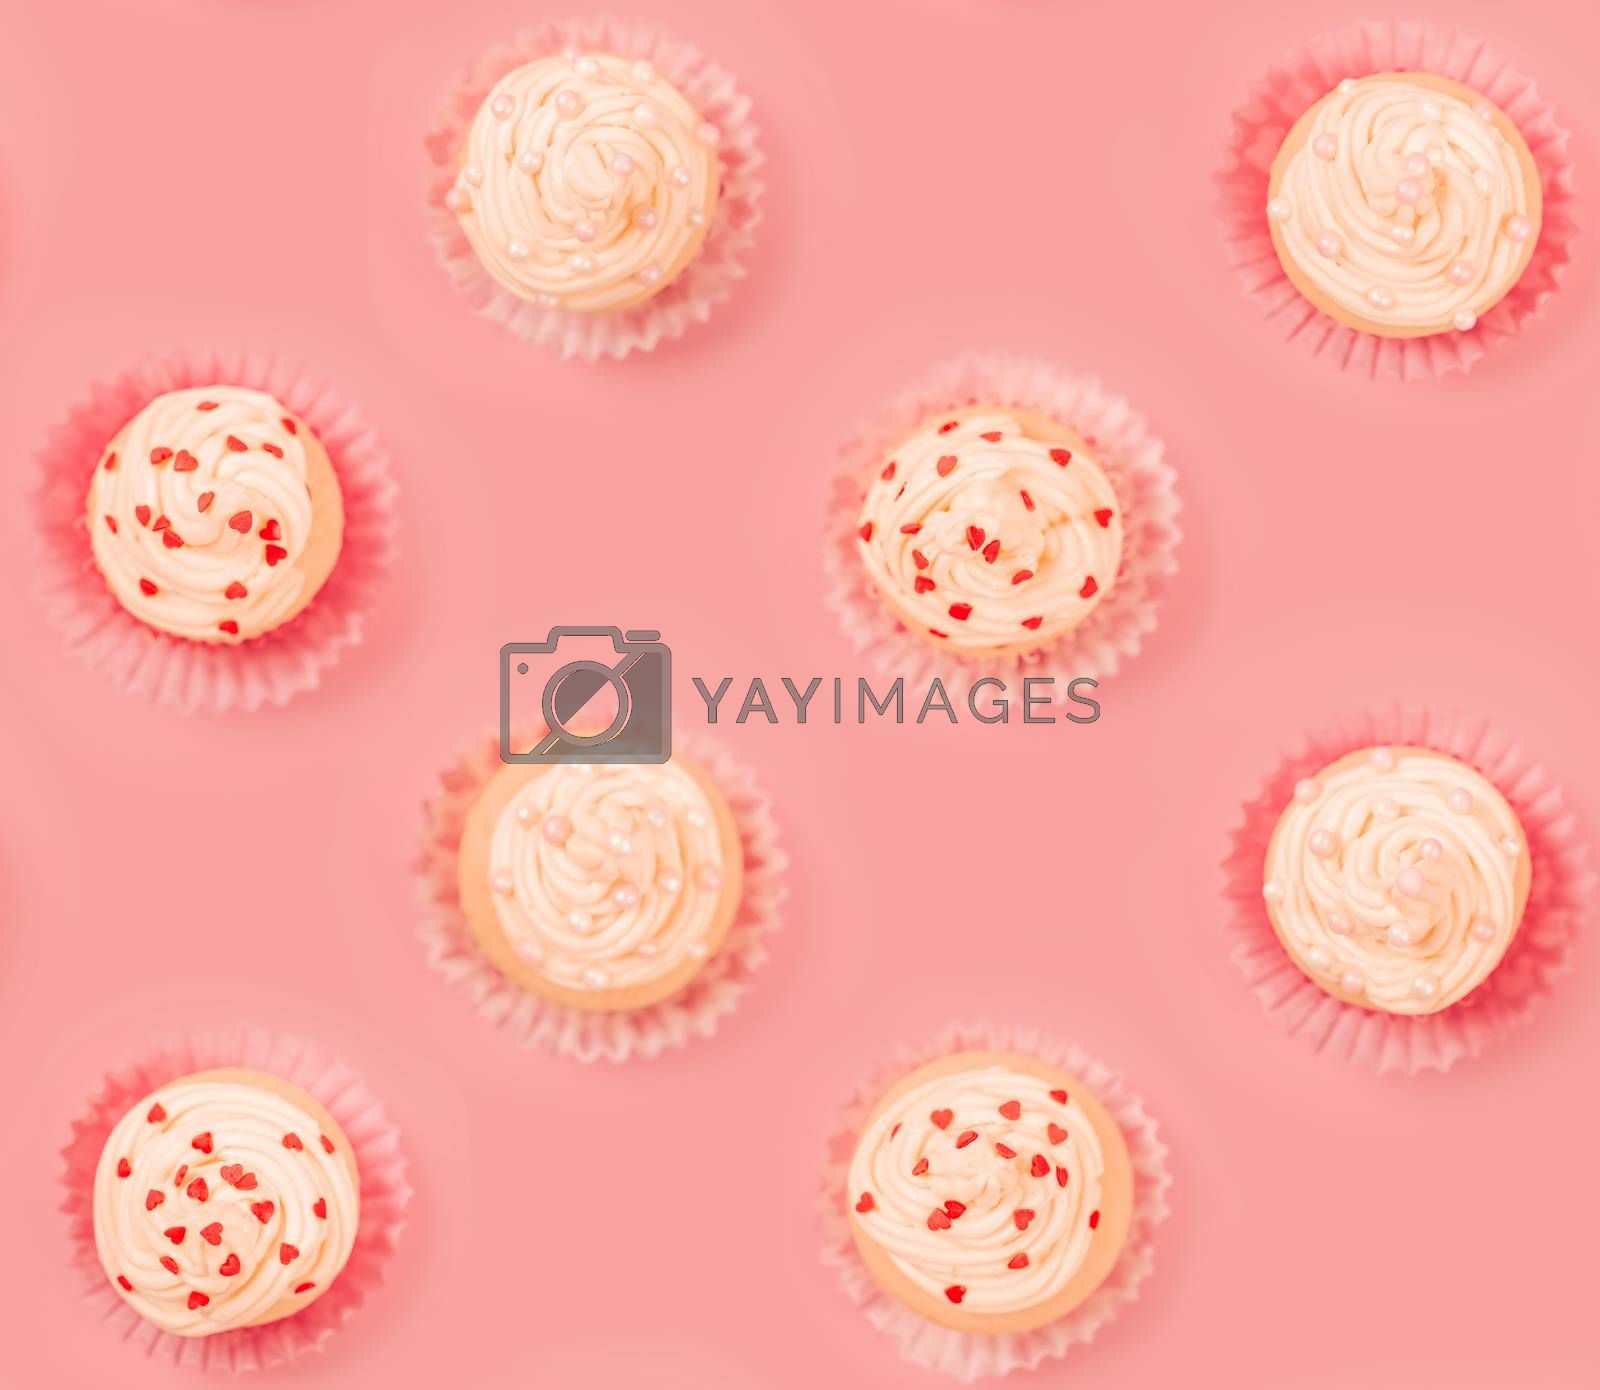 Valentine day love cupcake decorated with cream and hearts on pink background seamless tile food pattern